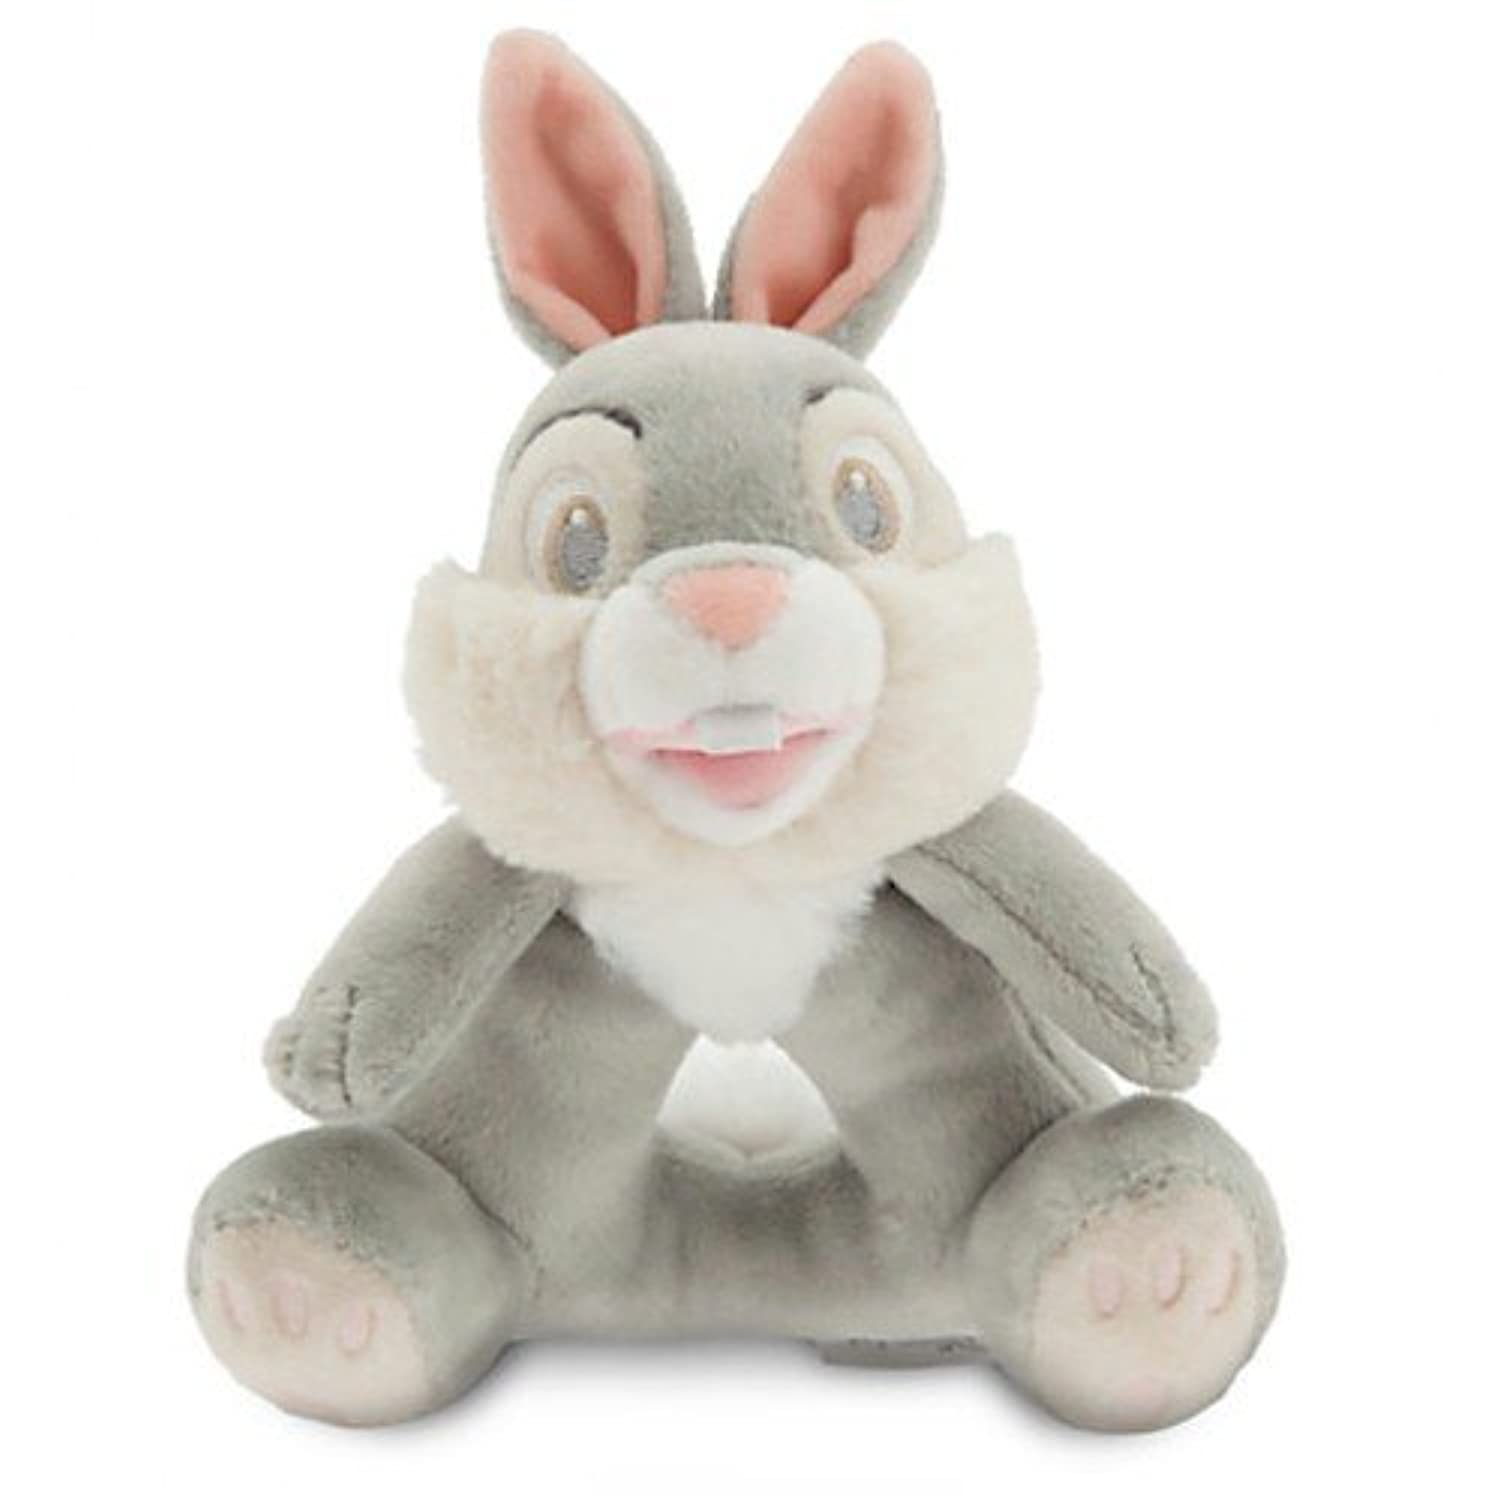 Disney Thumper Plush Rattle for Baby [並行輸入品]